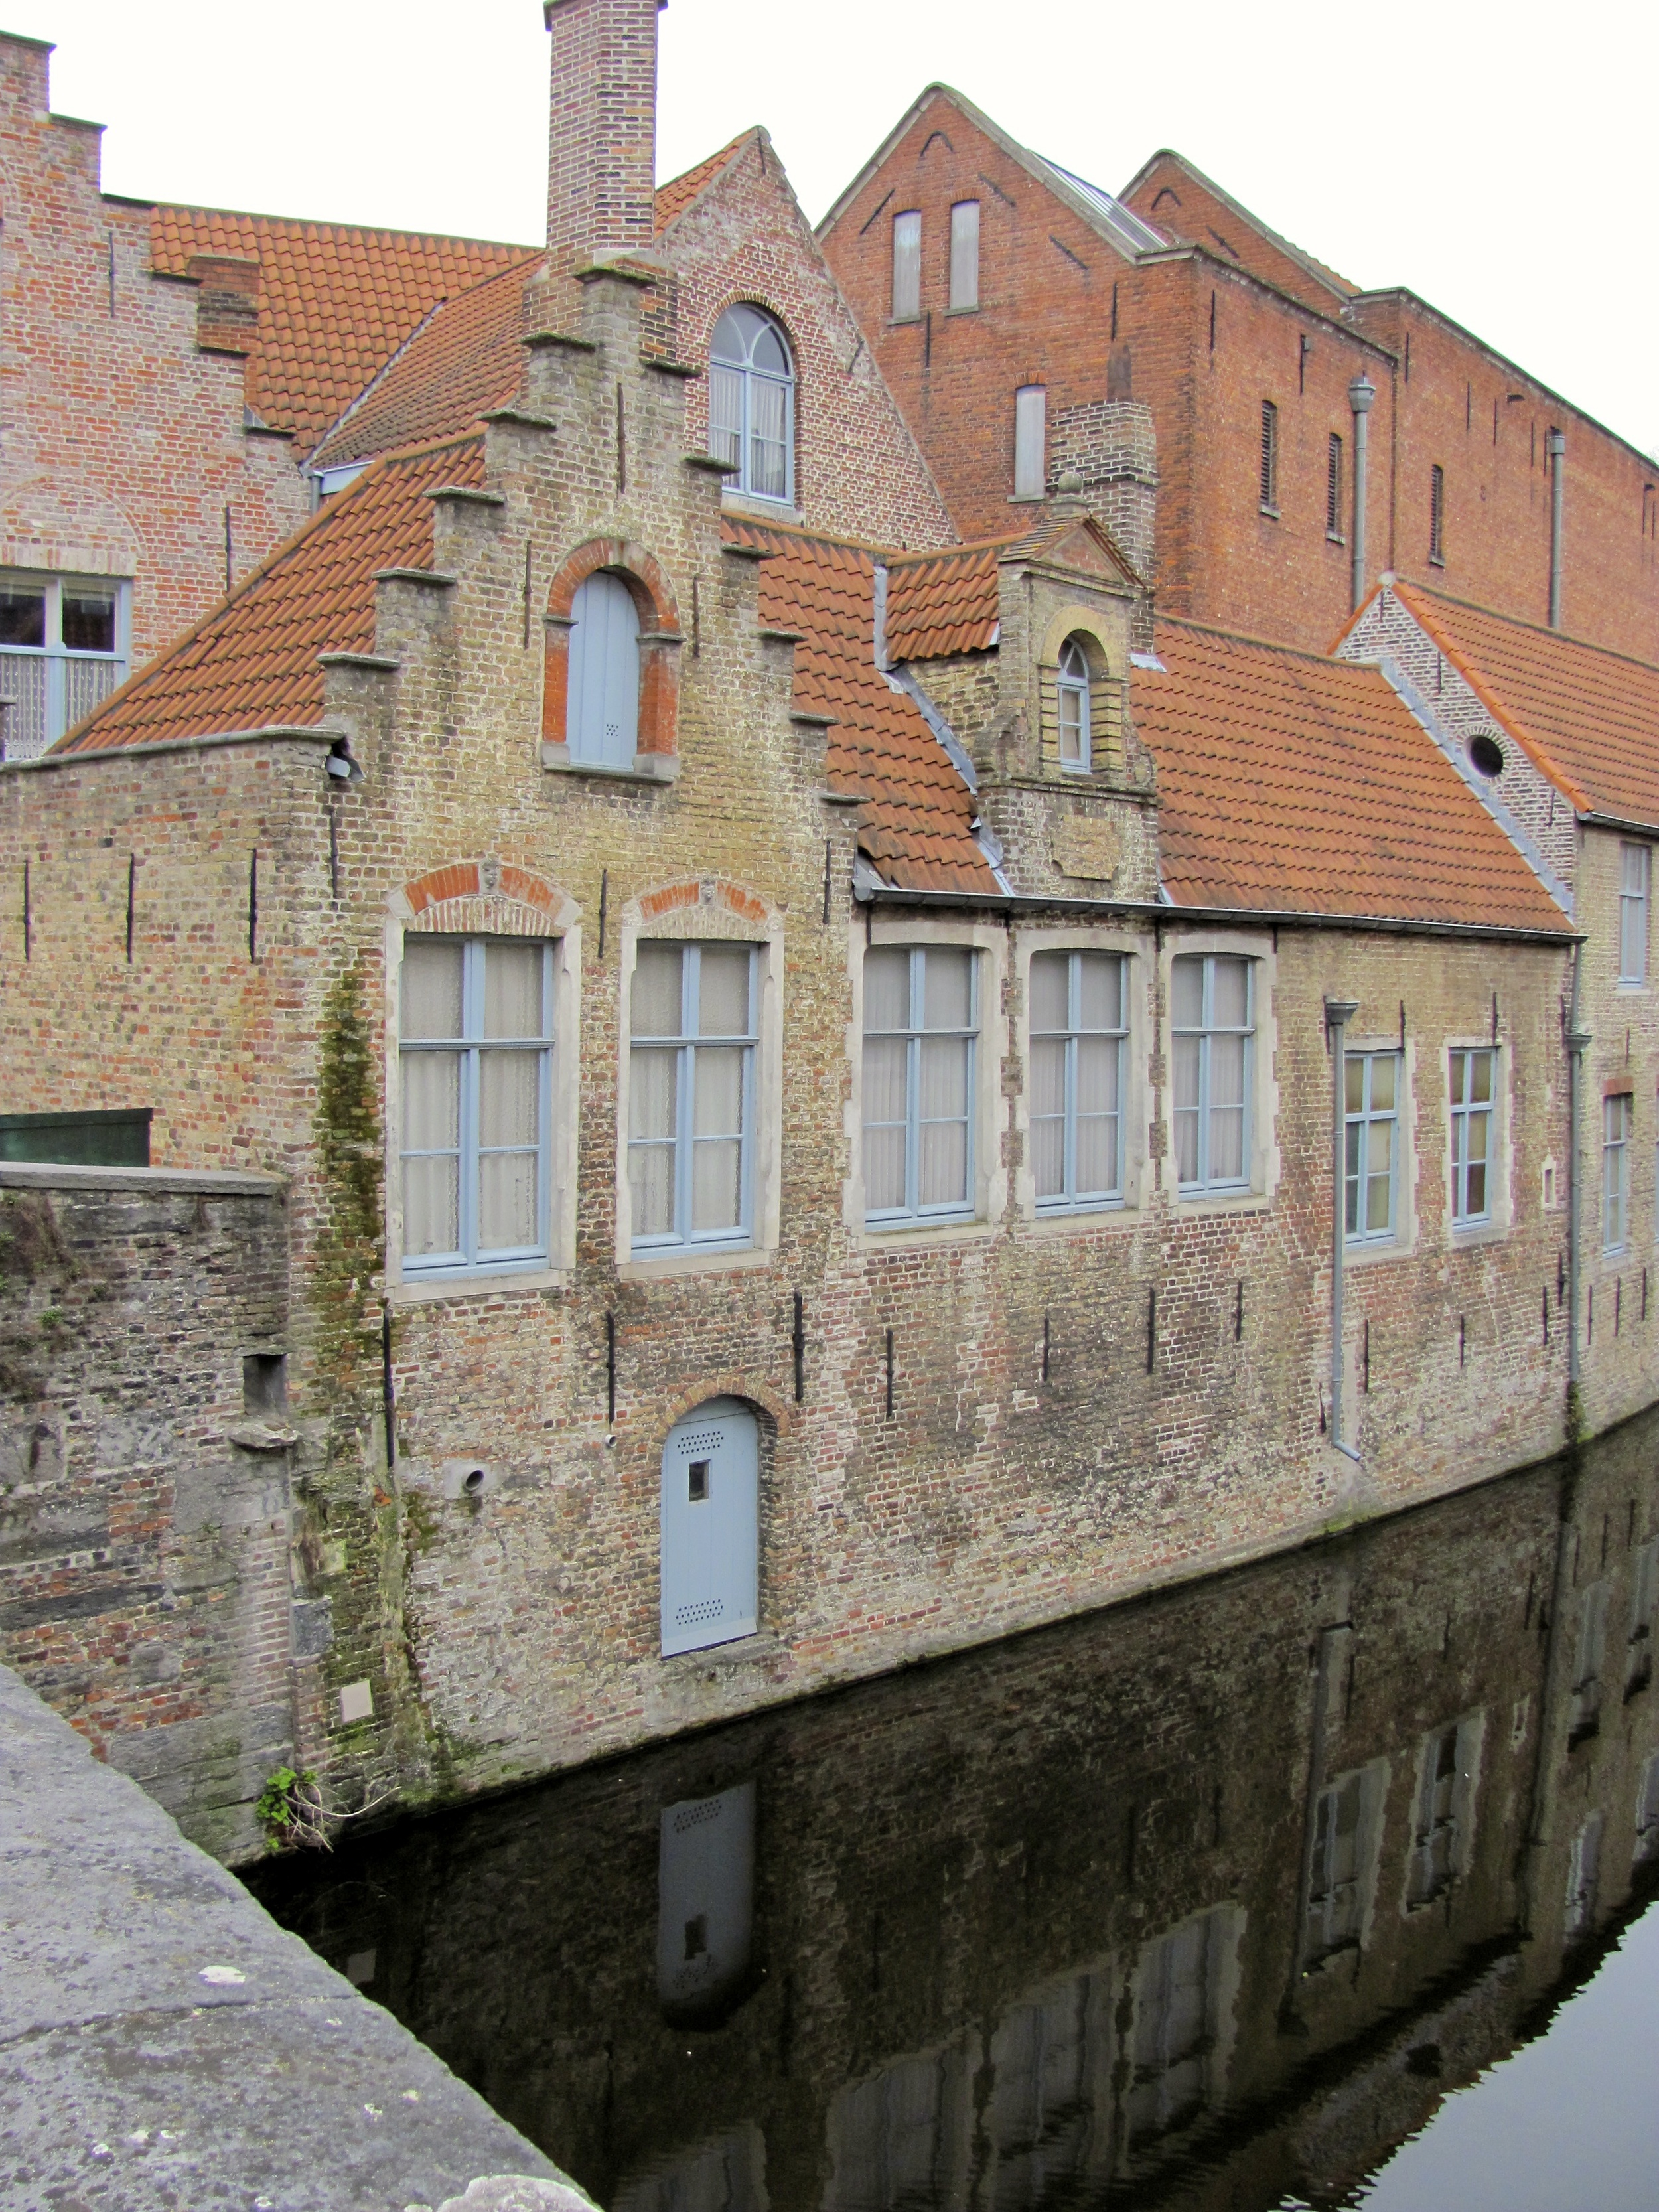 Building facade on canal, Bruges, Belgium, VHS 2010